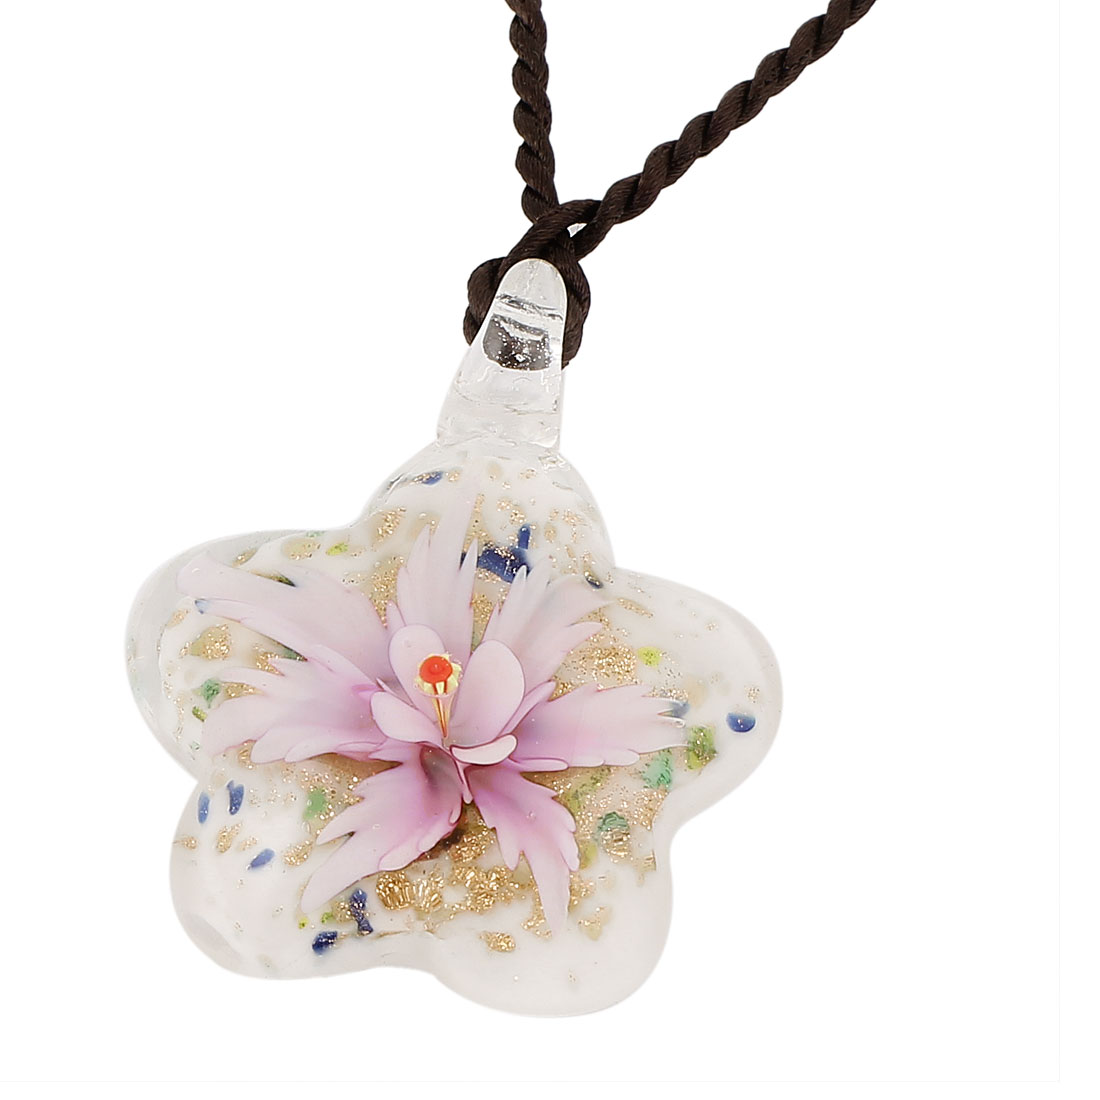 Unique Bargains Glass Pressed Flower Design Women Pendant Necklace Light Purple White